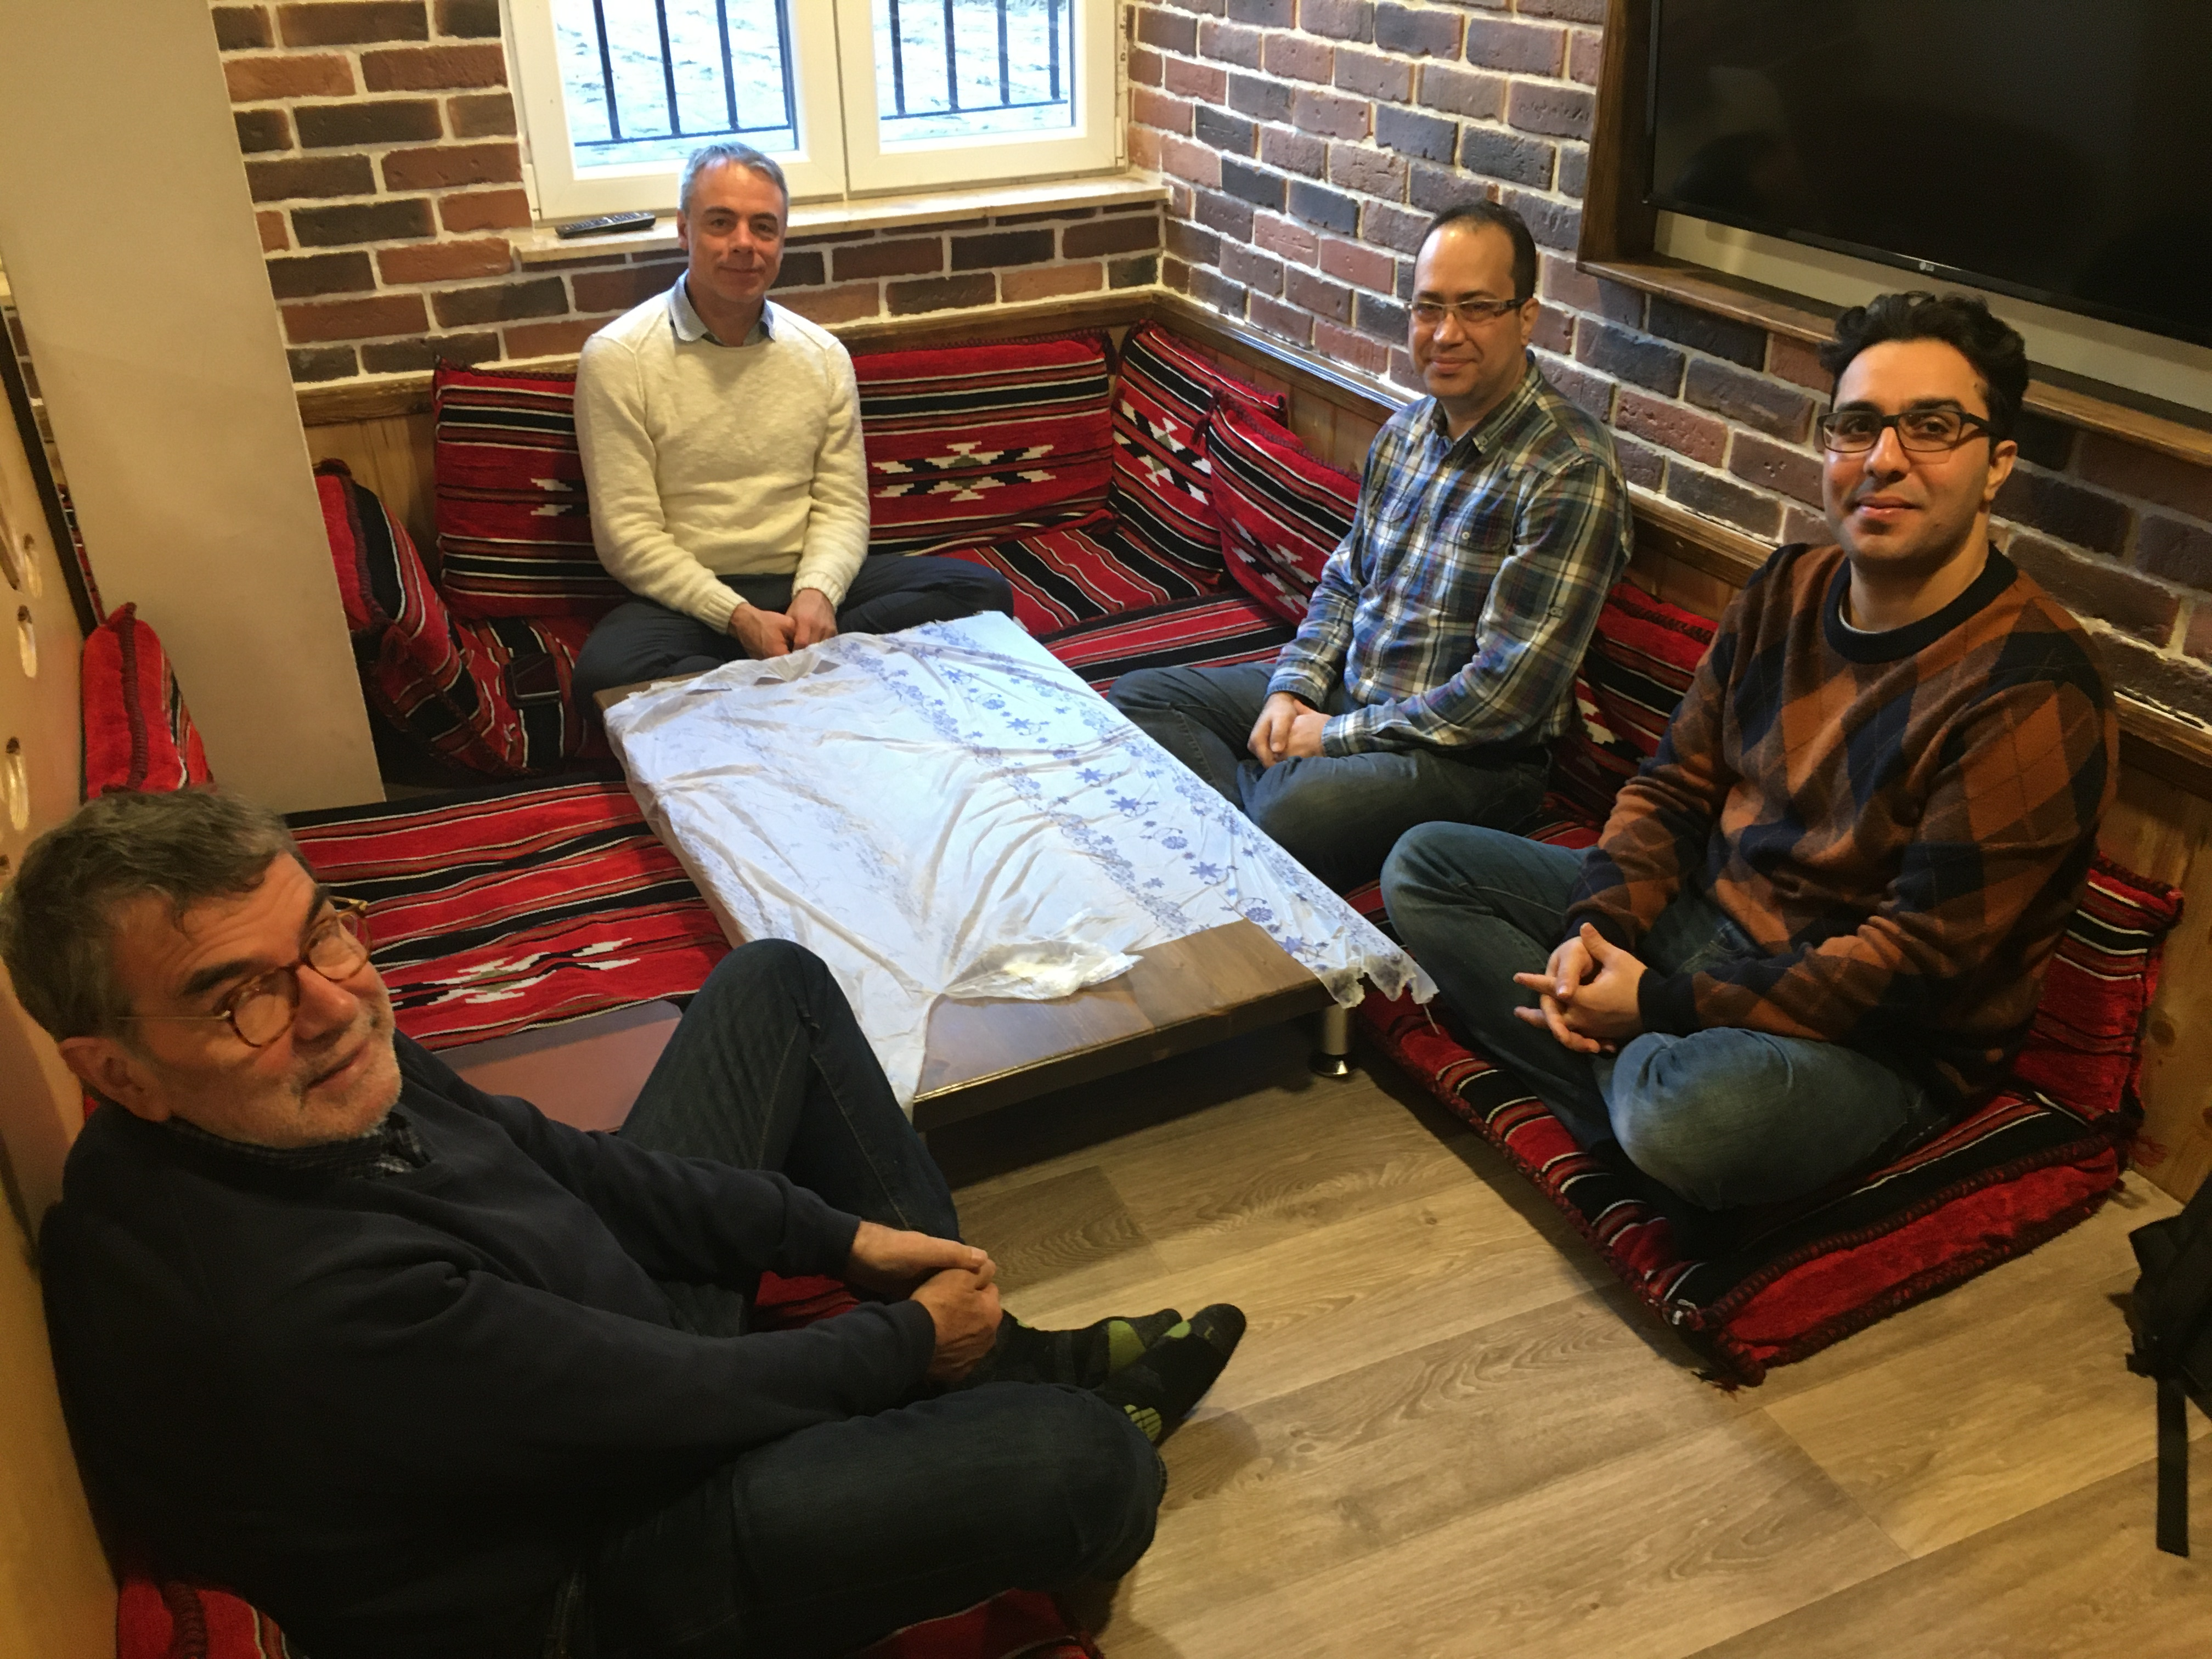 Luciano Kovacs and Burkhard Paetzold (both PC(USA) staff) have lunch and conversation together with members of the Iranian Church and Ryan during a visit to Berlin this winter.